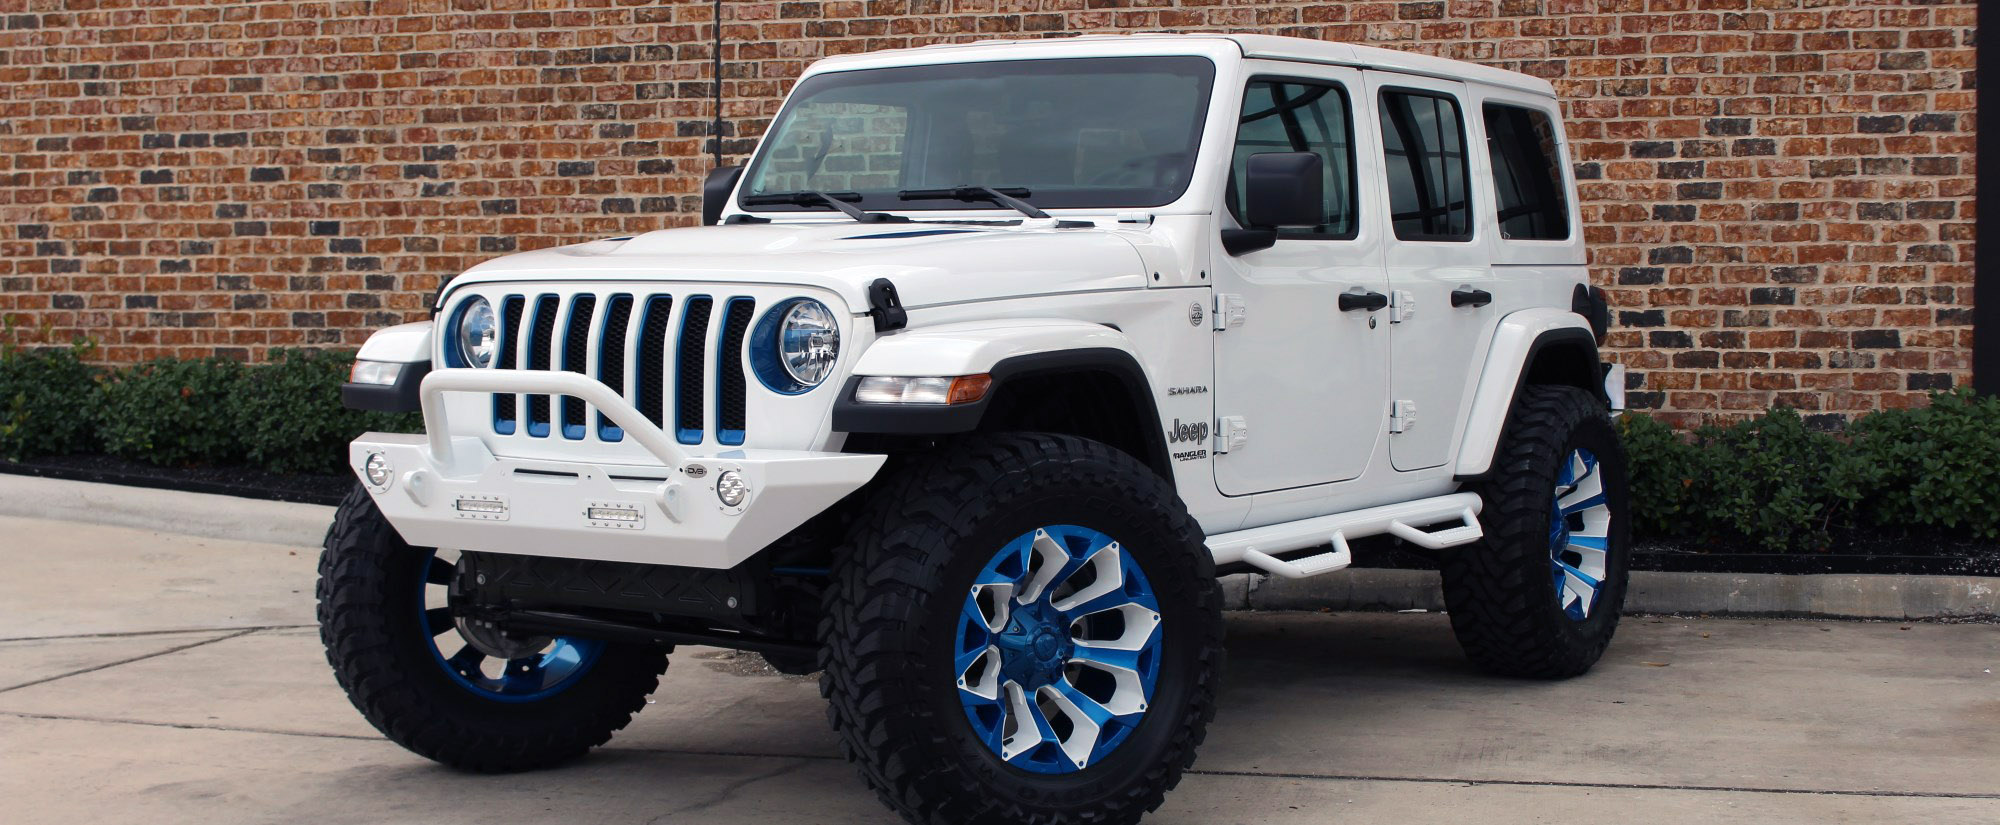 2018 jeep wrangler unlimited jl white blue